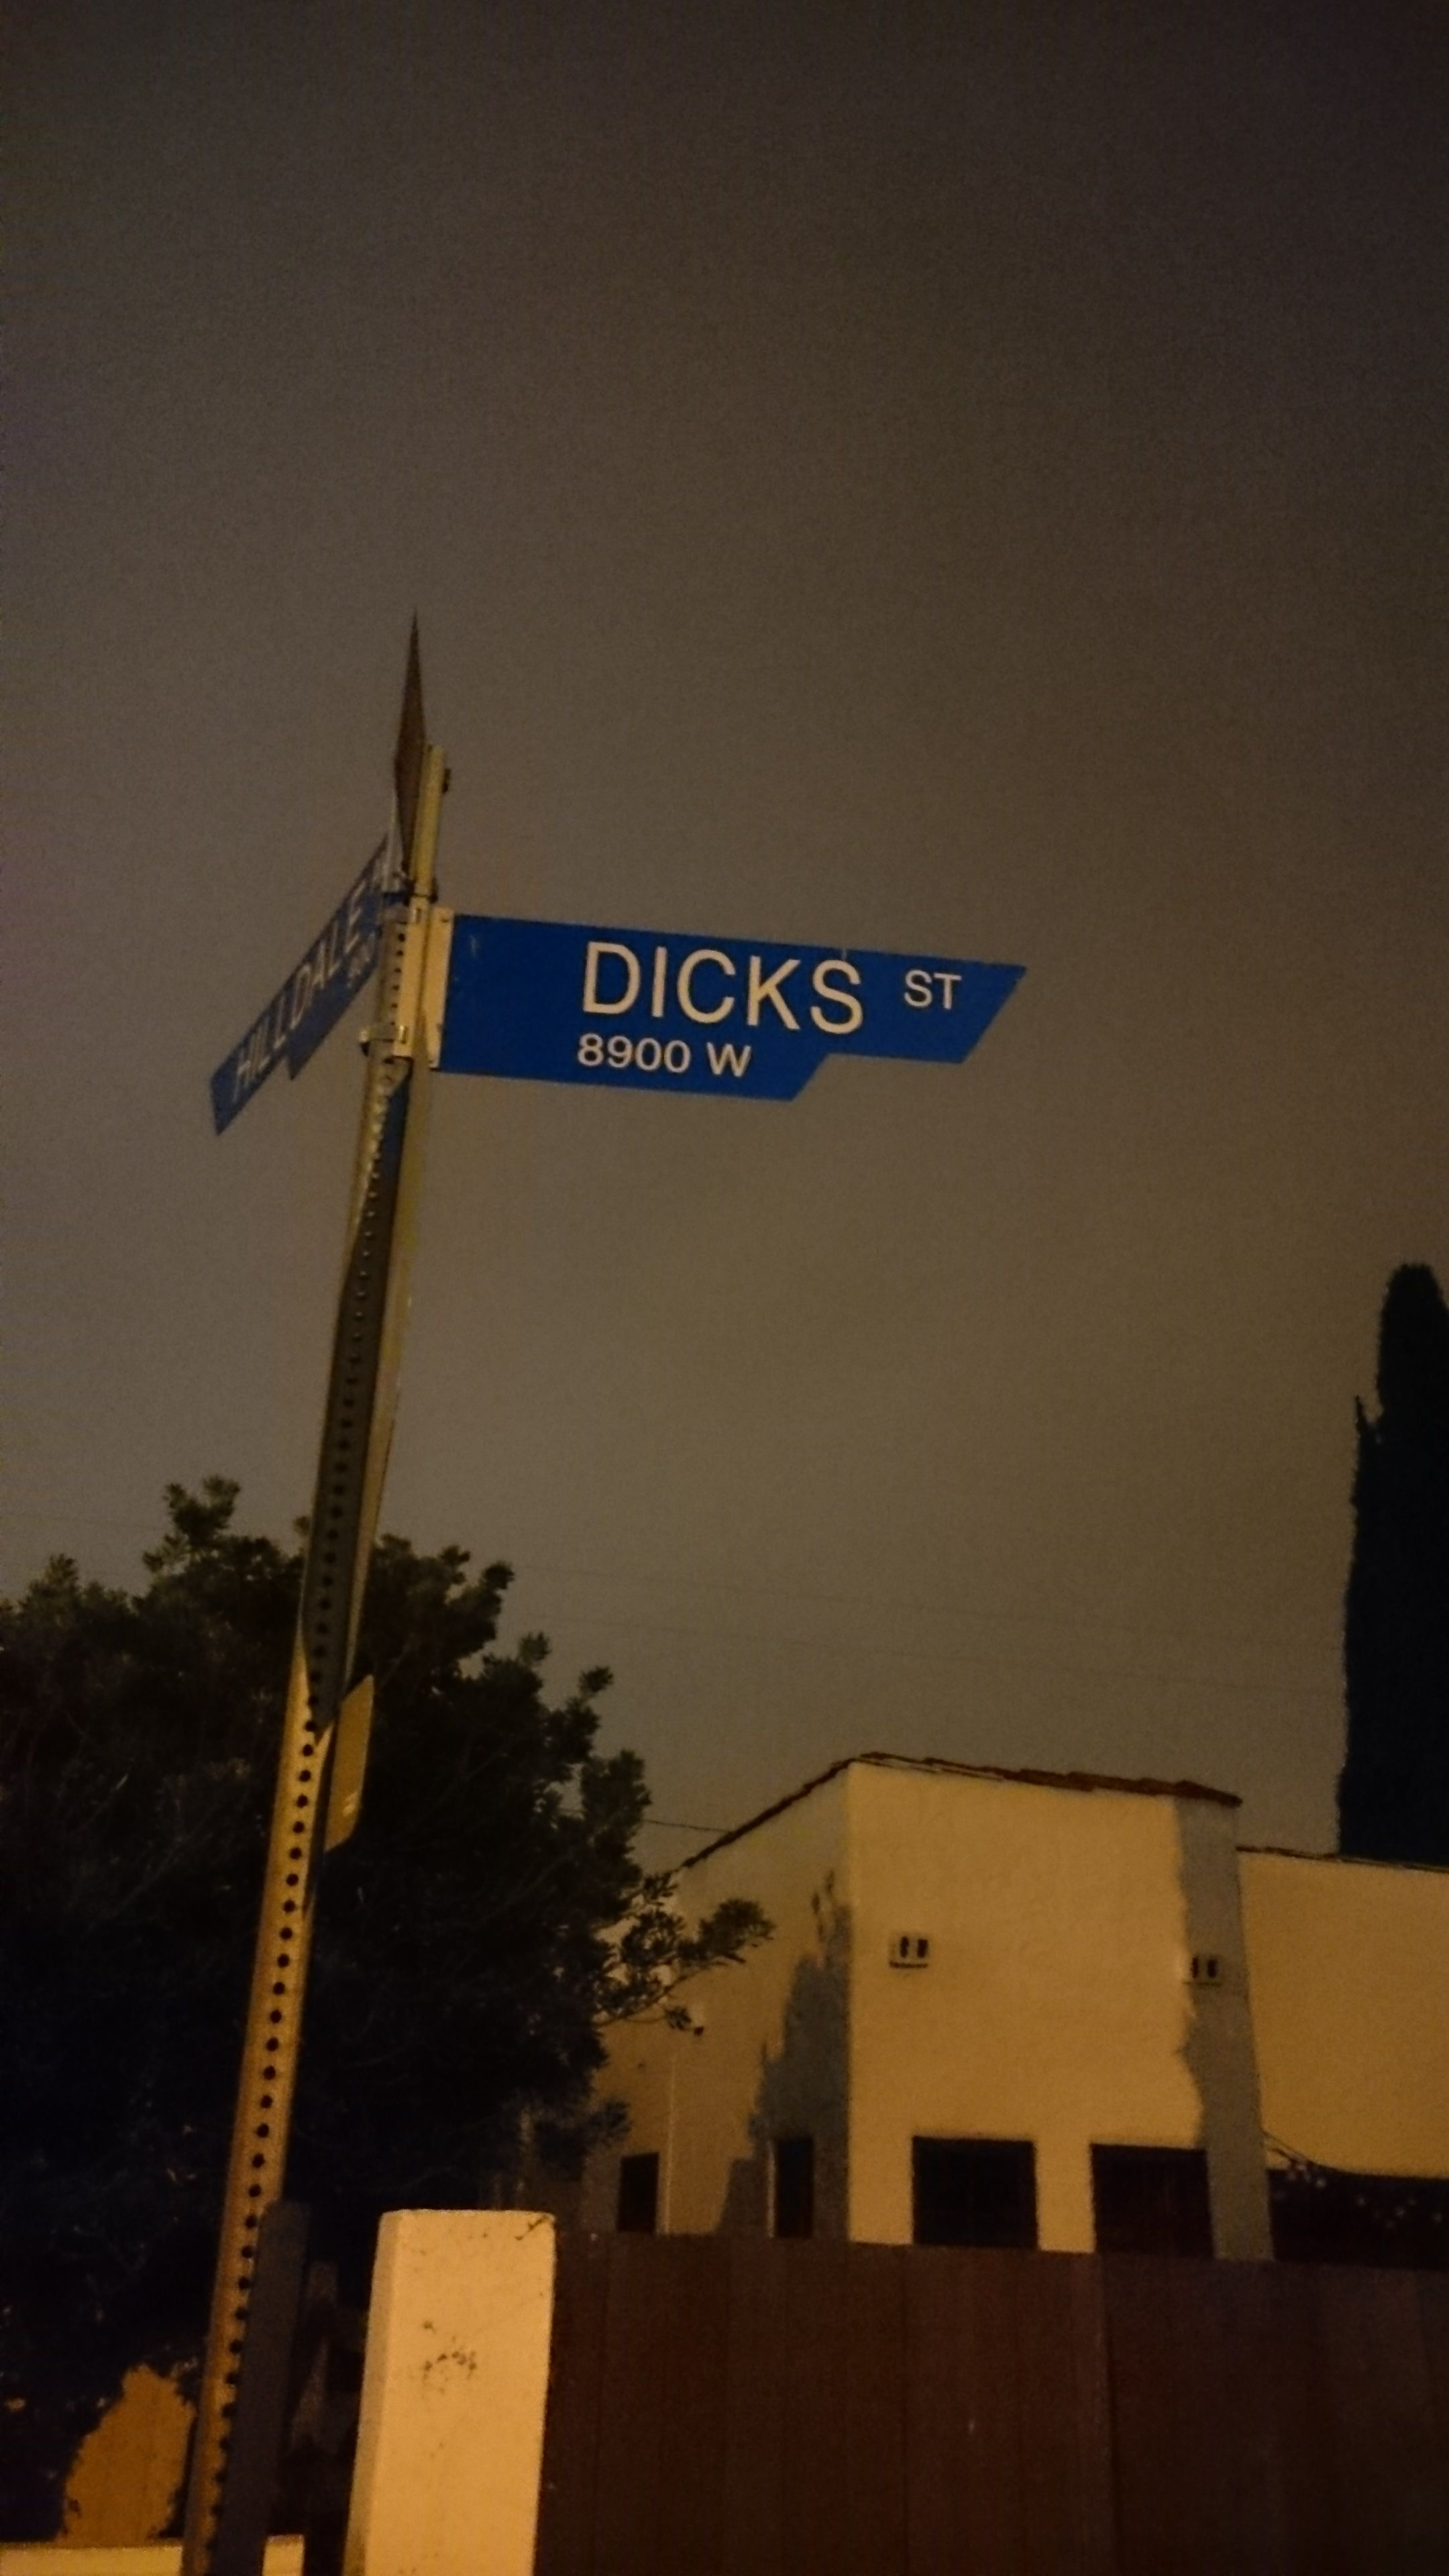 That's WeHo for you...